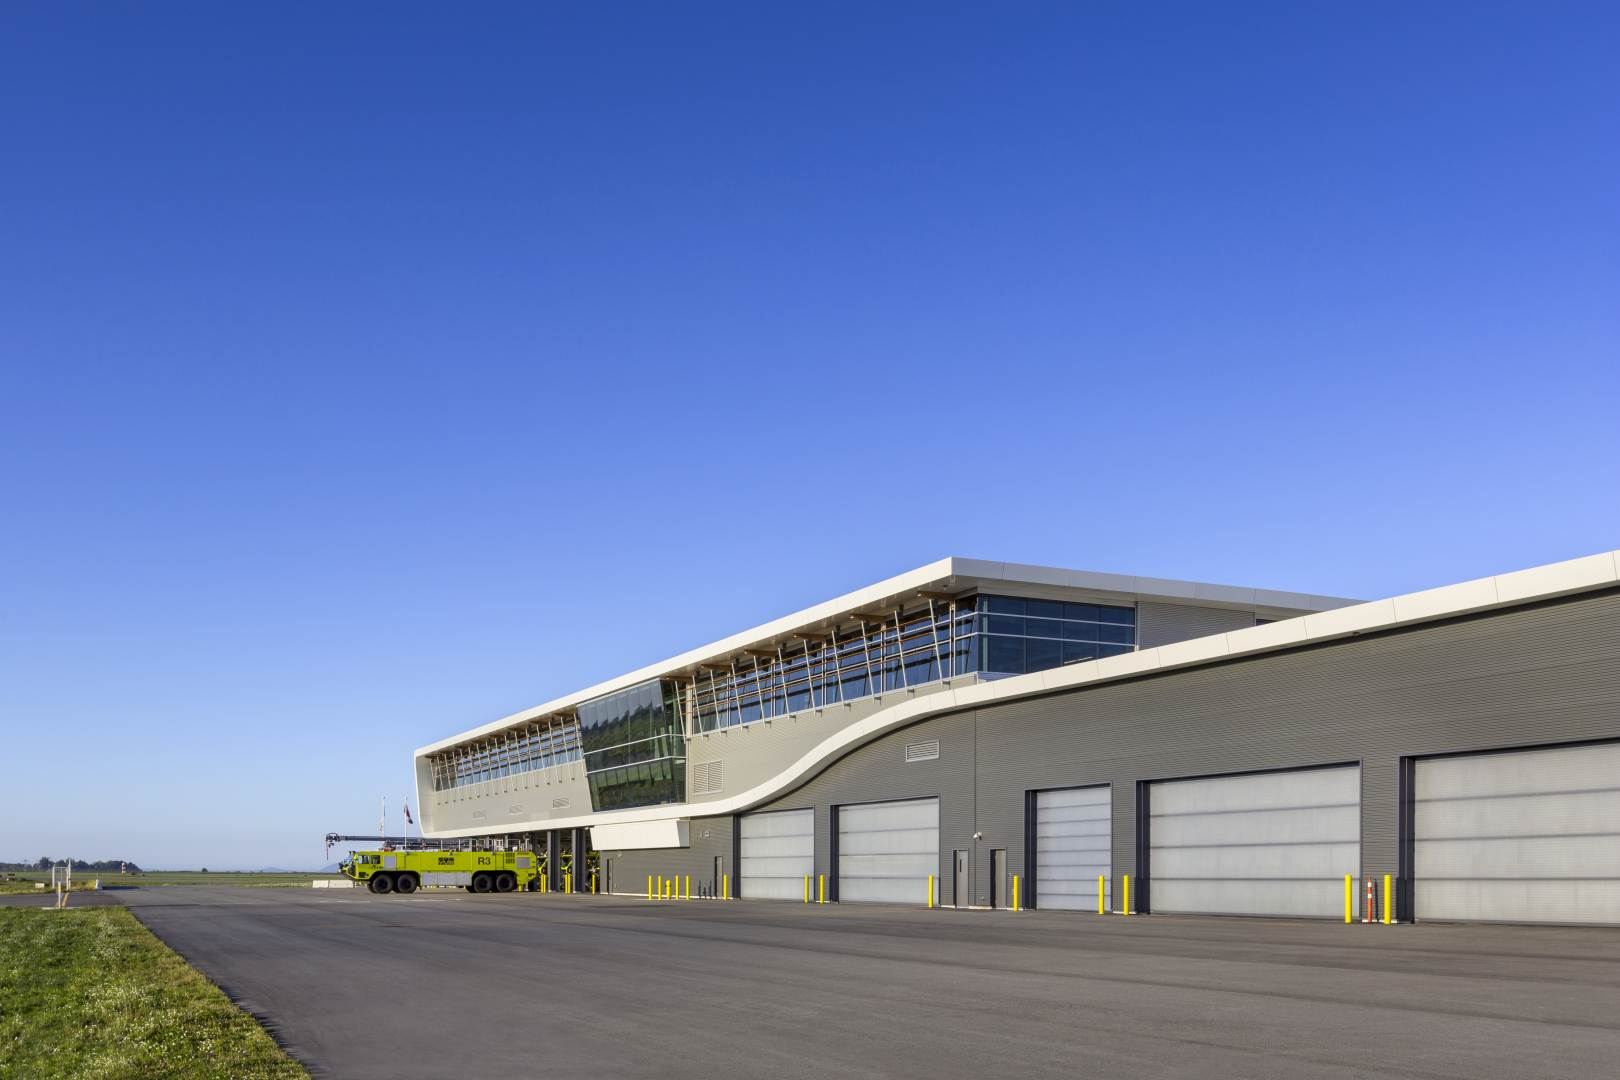 YVR Airside Operations Building